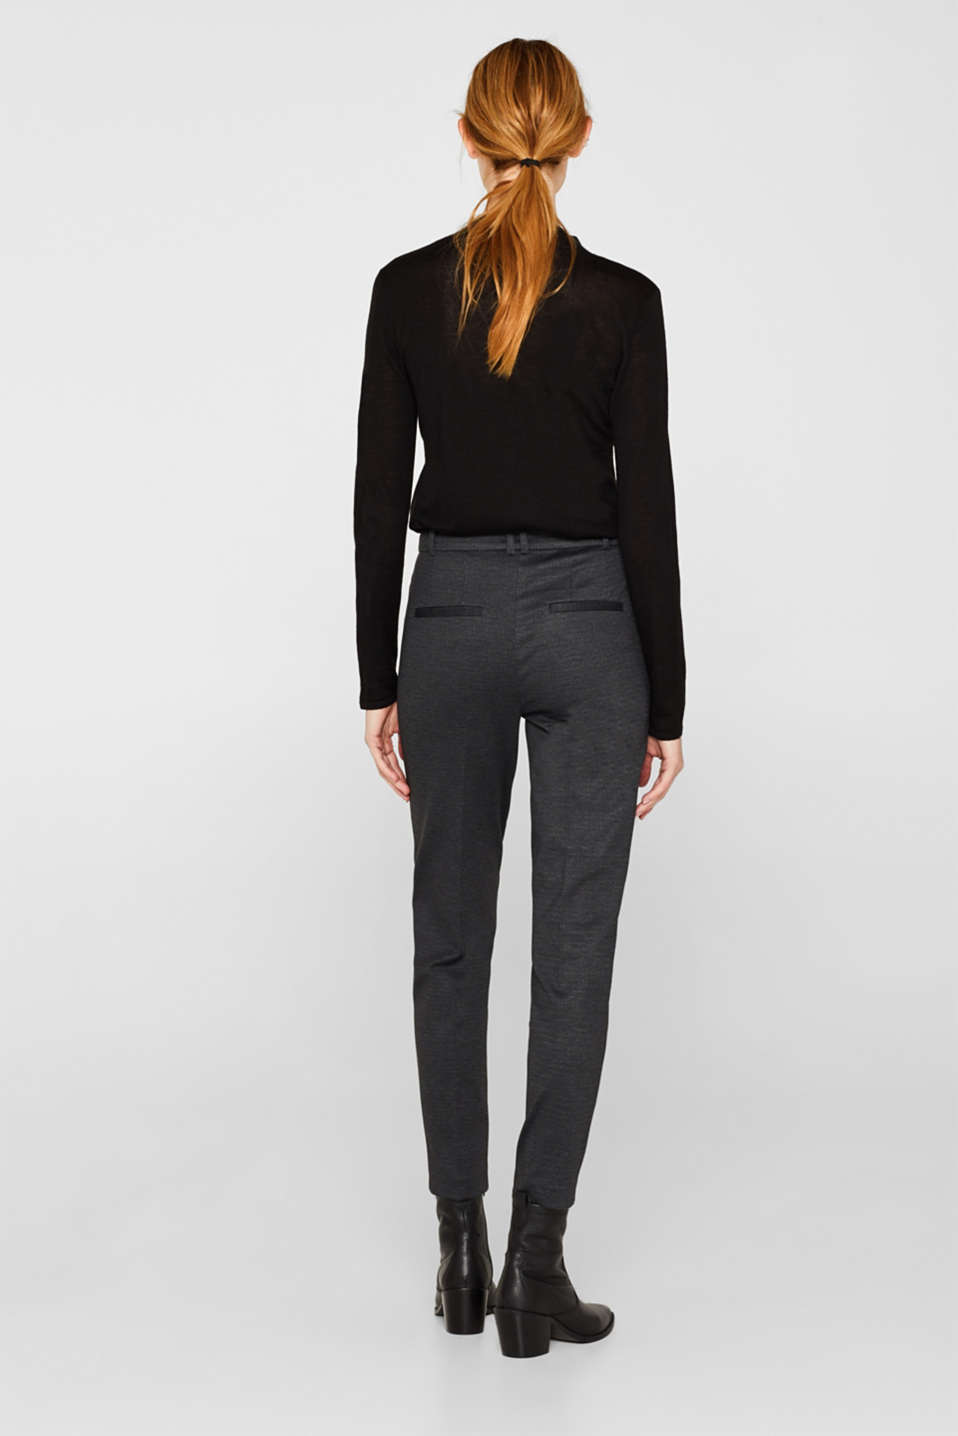 MINI CHECK Mix + Match stretch trousers, ANTHRACITE, detail image number 3